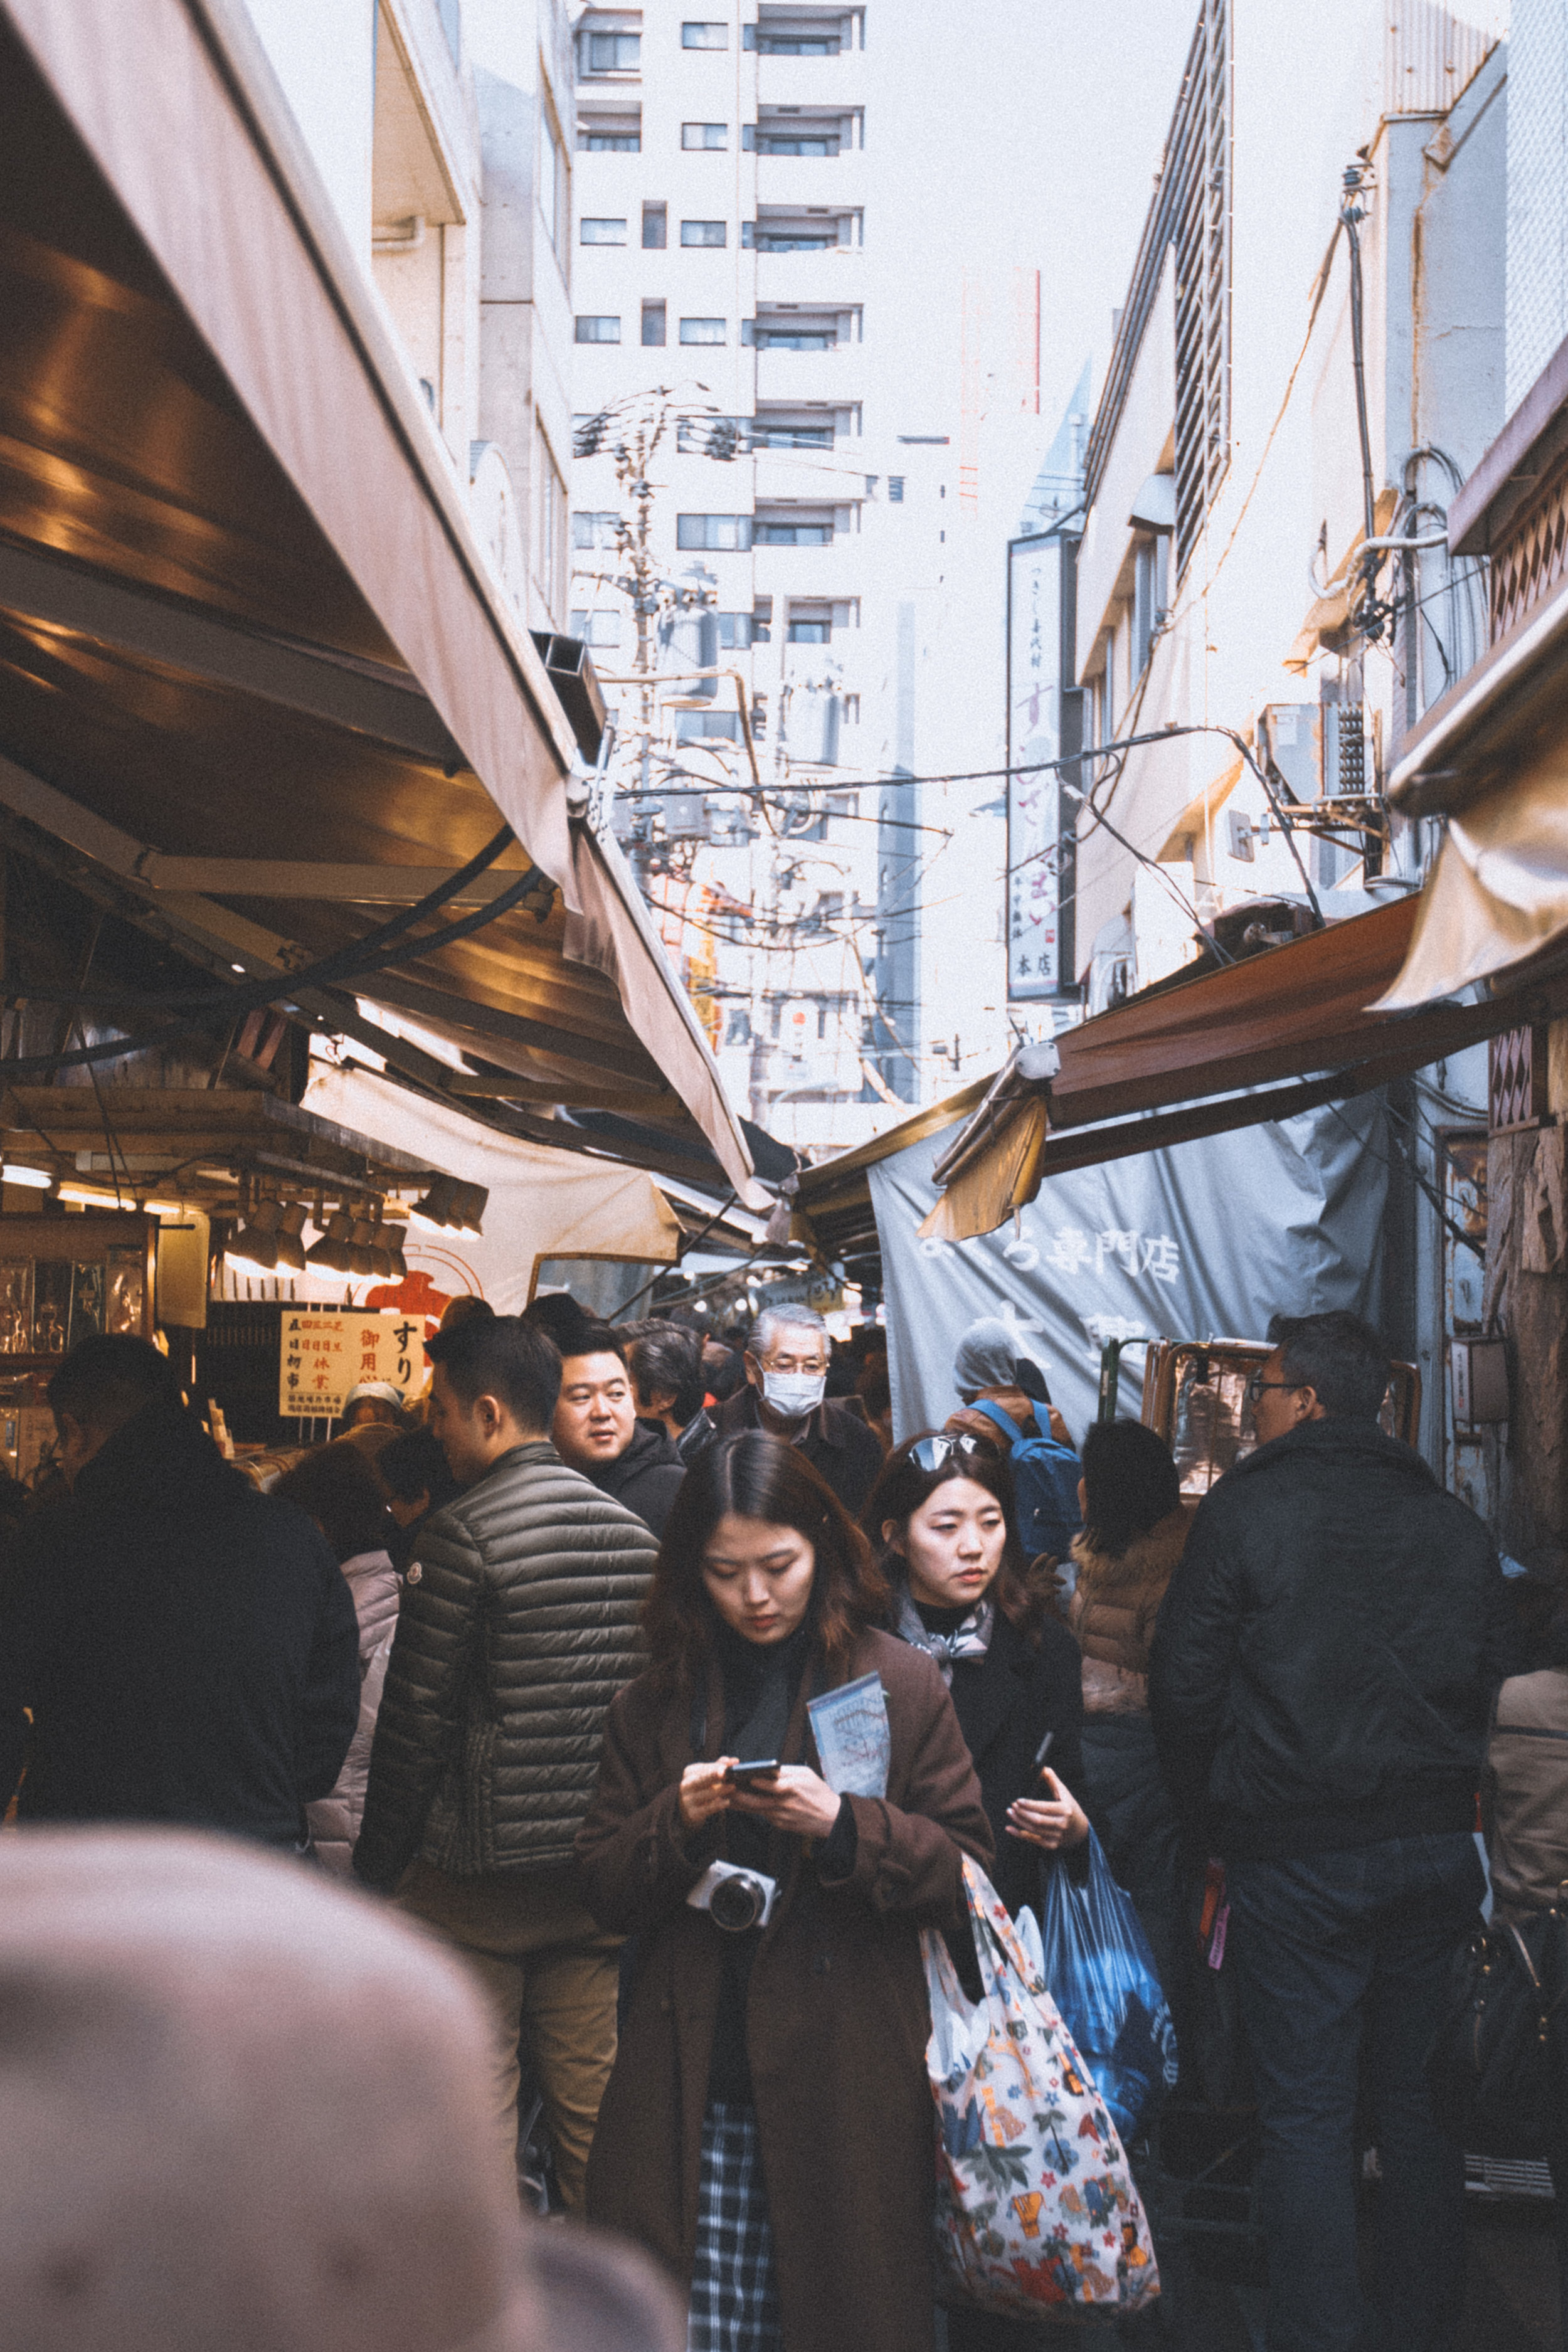 Tsukiji Market - One one the most interesting places to eat in Tokyo, Tsukiji is a fascinating collection of hawker market items, with everything from dried fish to kitchen utensils. There are plenty of stalls to savour some of Tokyo's finest street food…definitely worth a visit